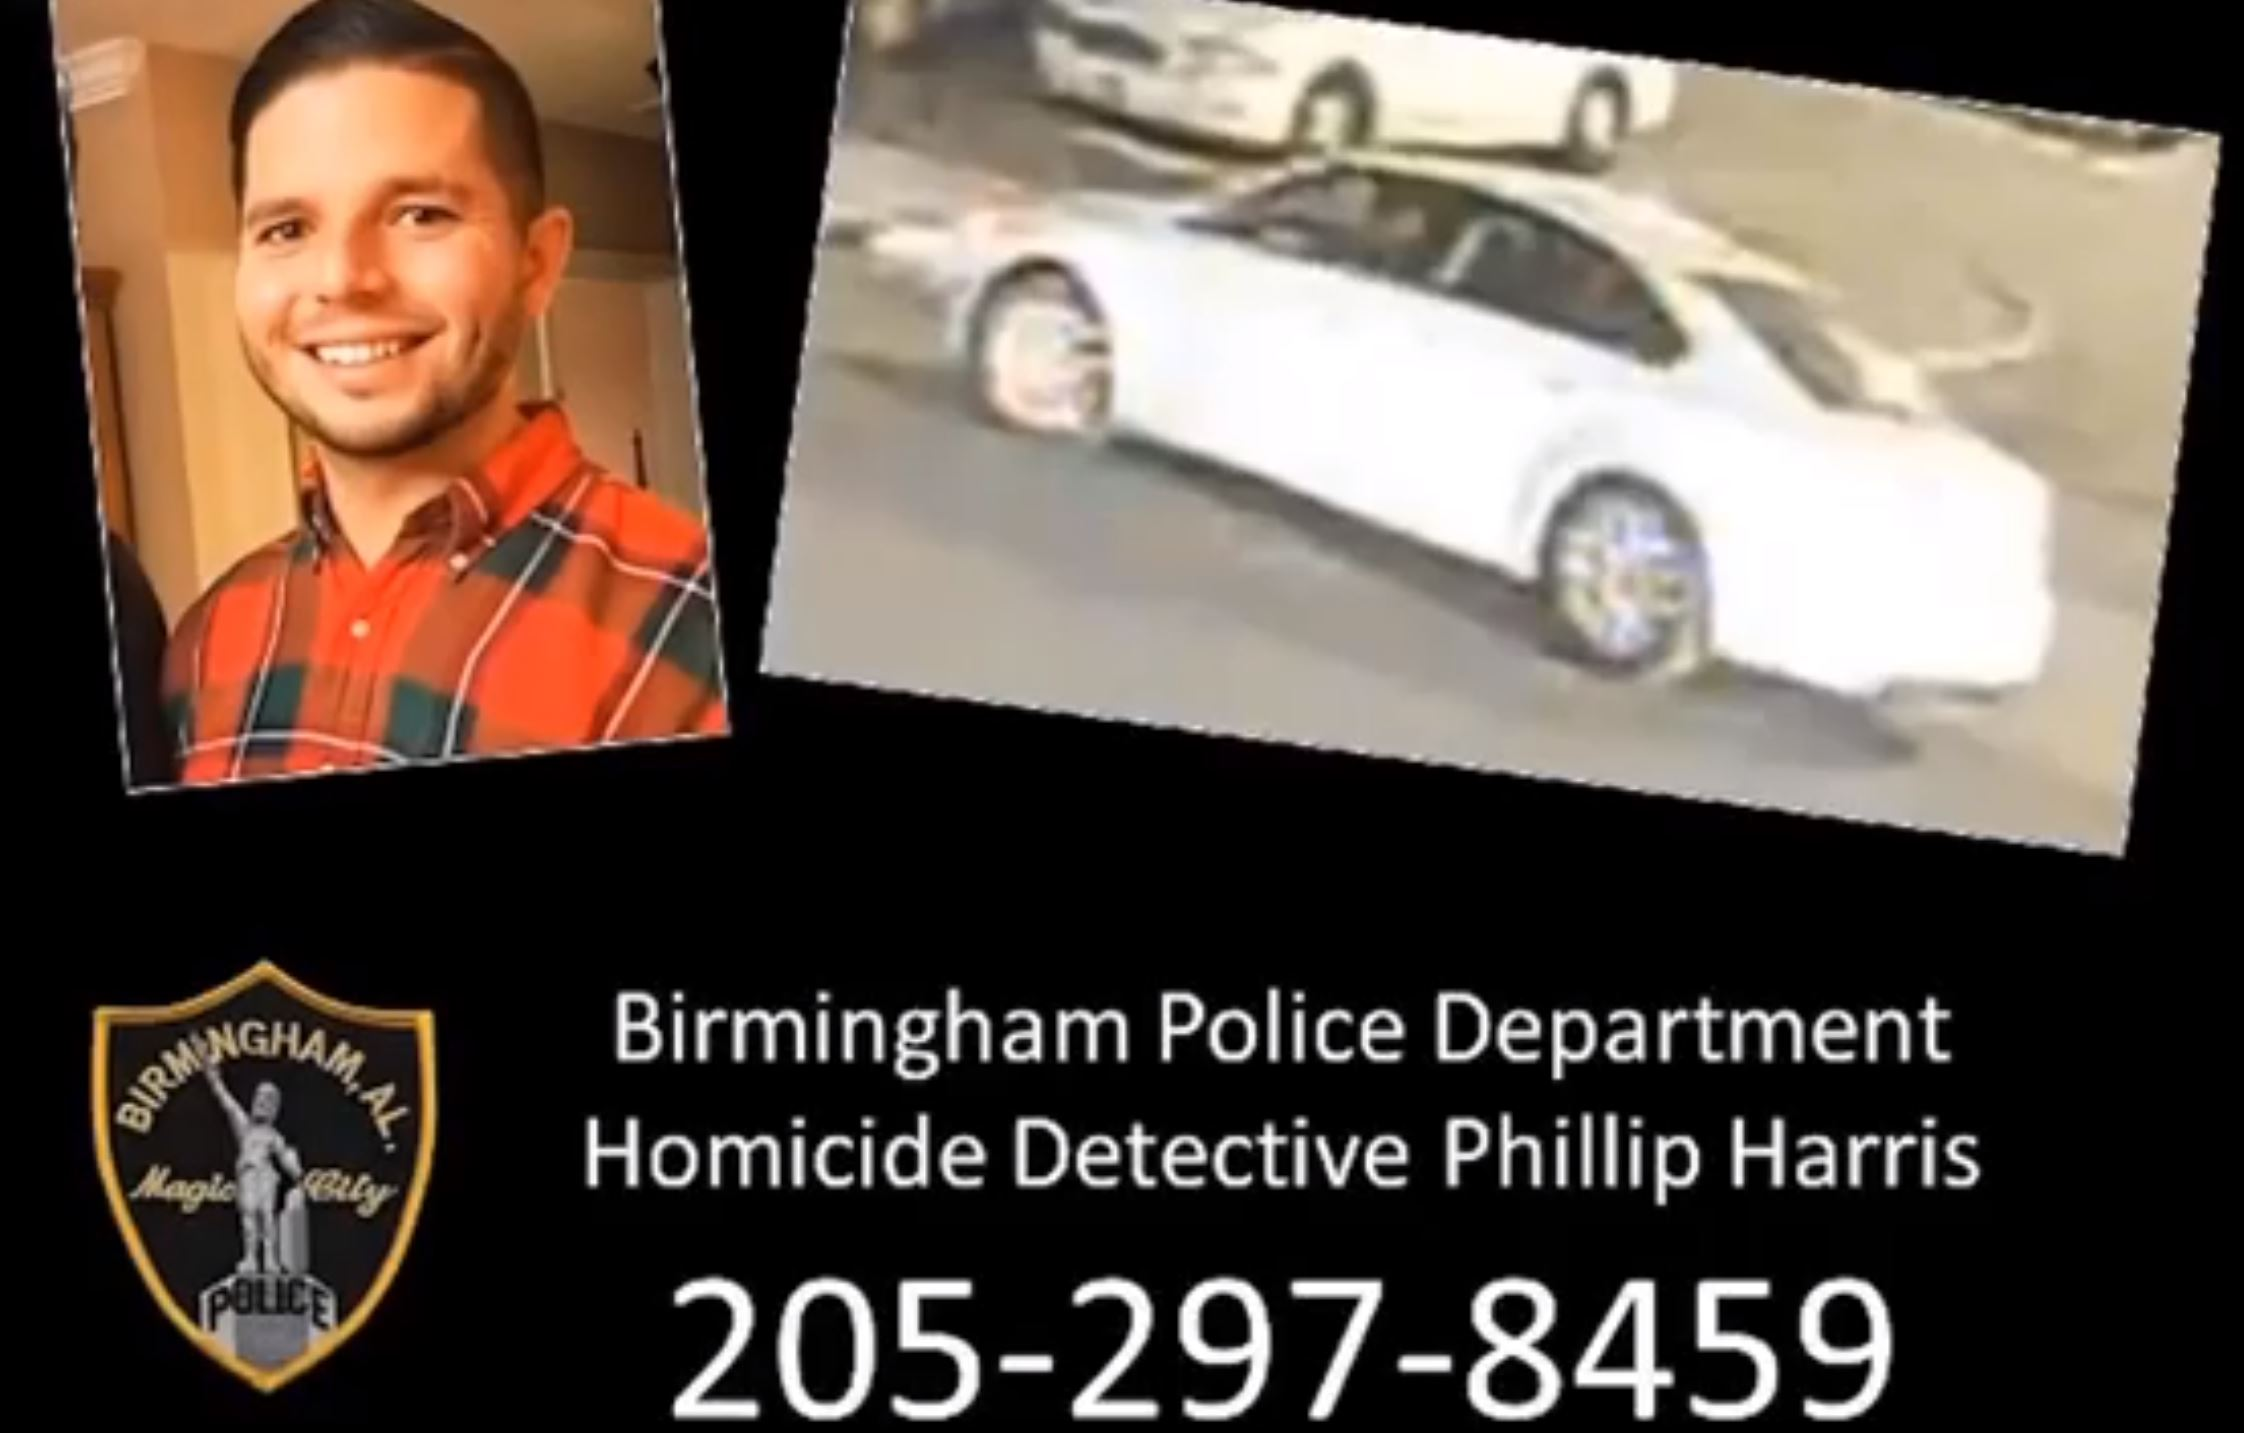 VIDEO: BPD Cold case detectives renew effort to find clues in death of man killed after going out with friends